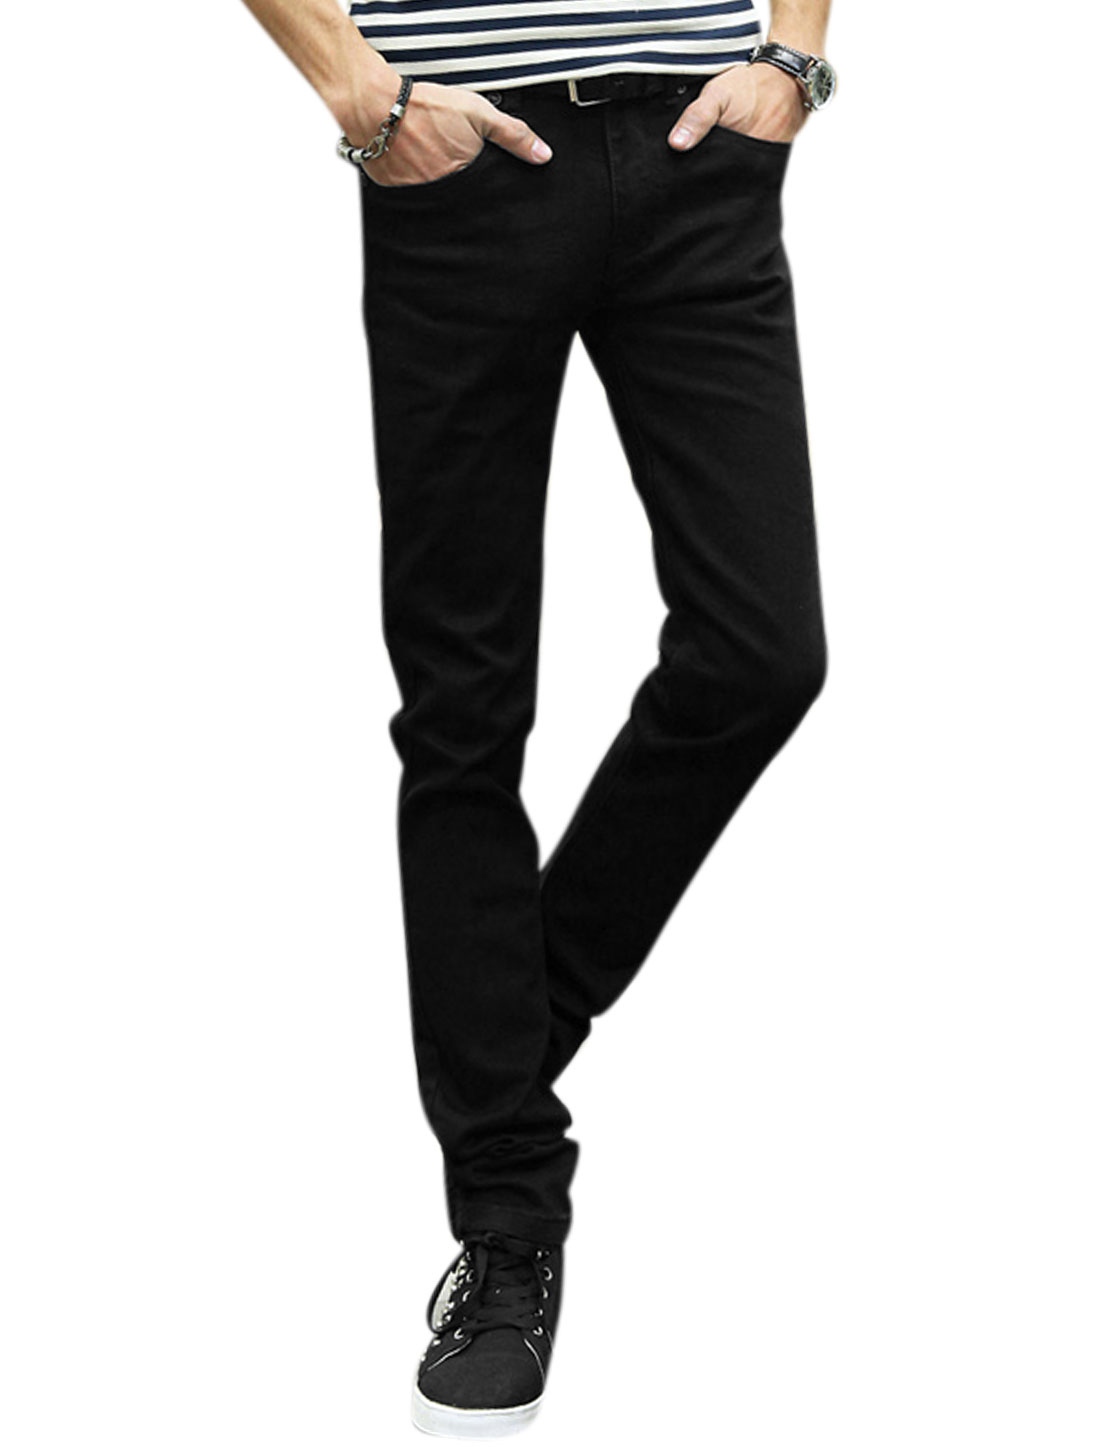 Men Mid Rise Two Slant Pockets Natural Waist Casual Pants Black W30